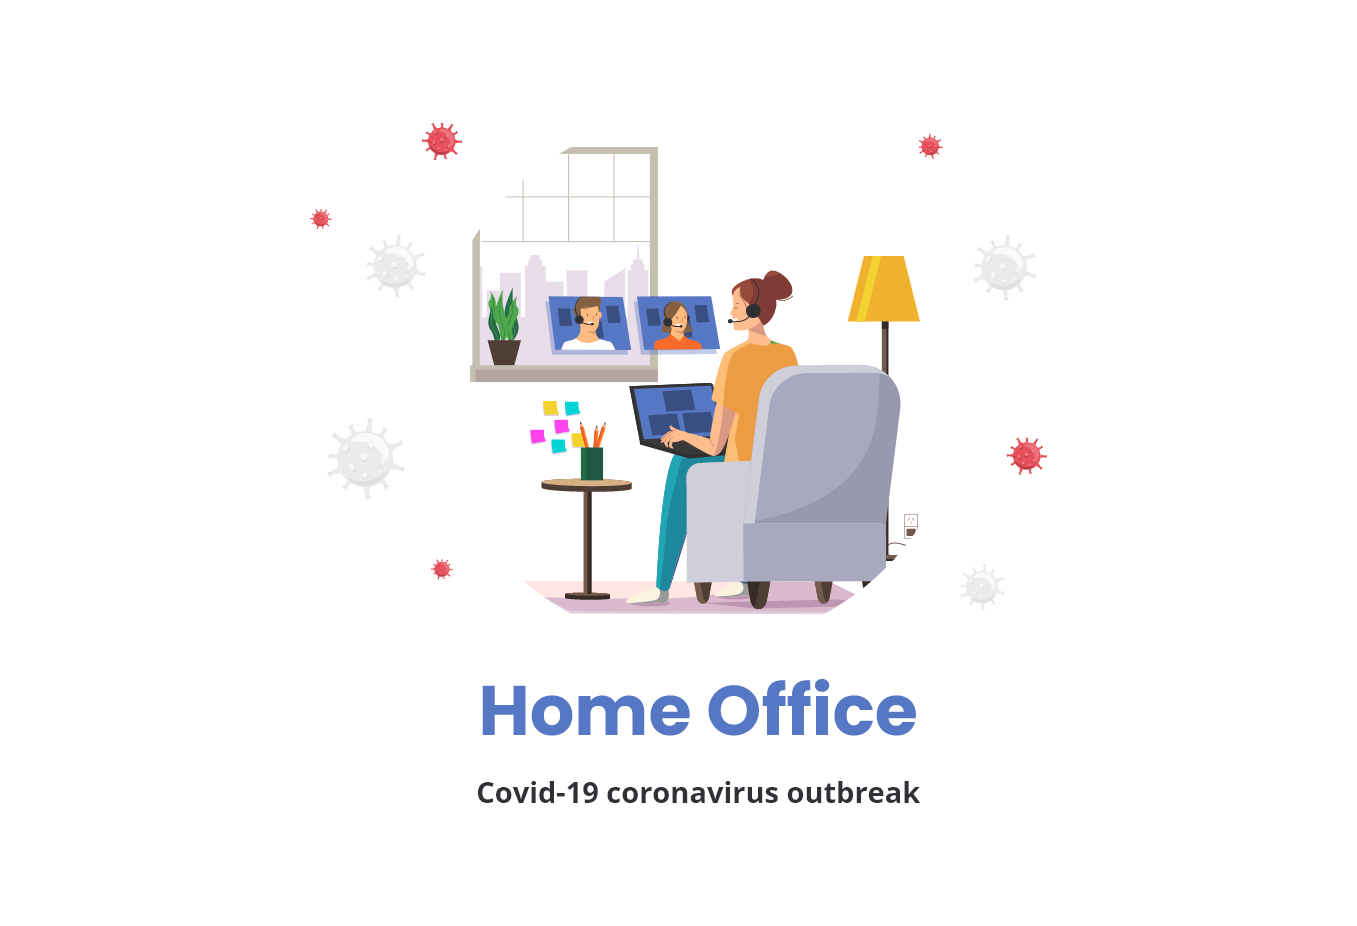 Work from home tips - interact with co-workers